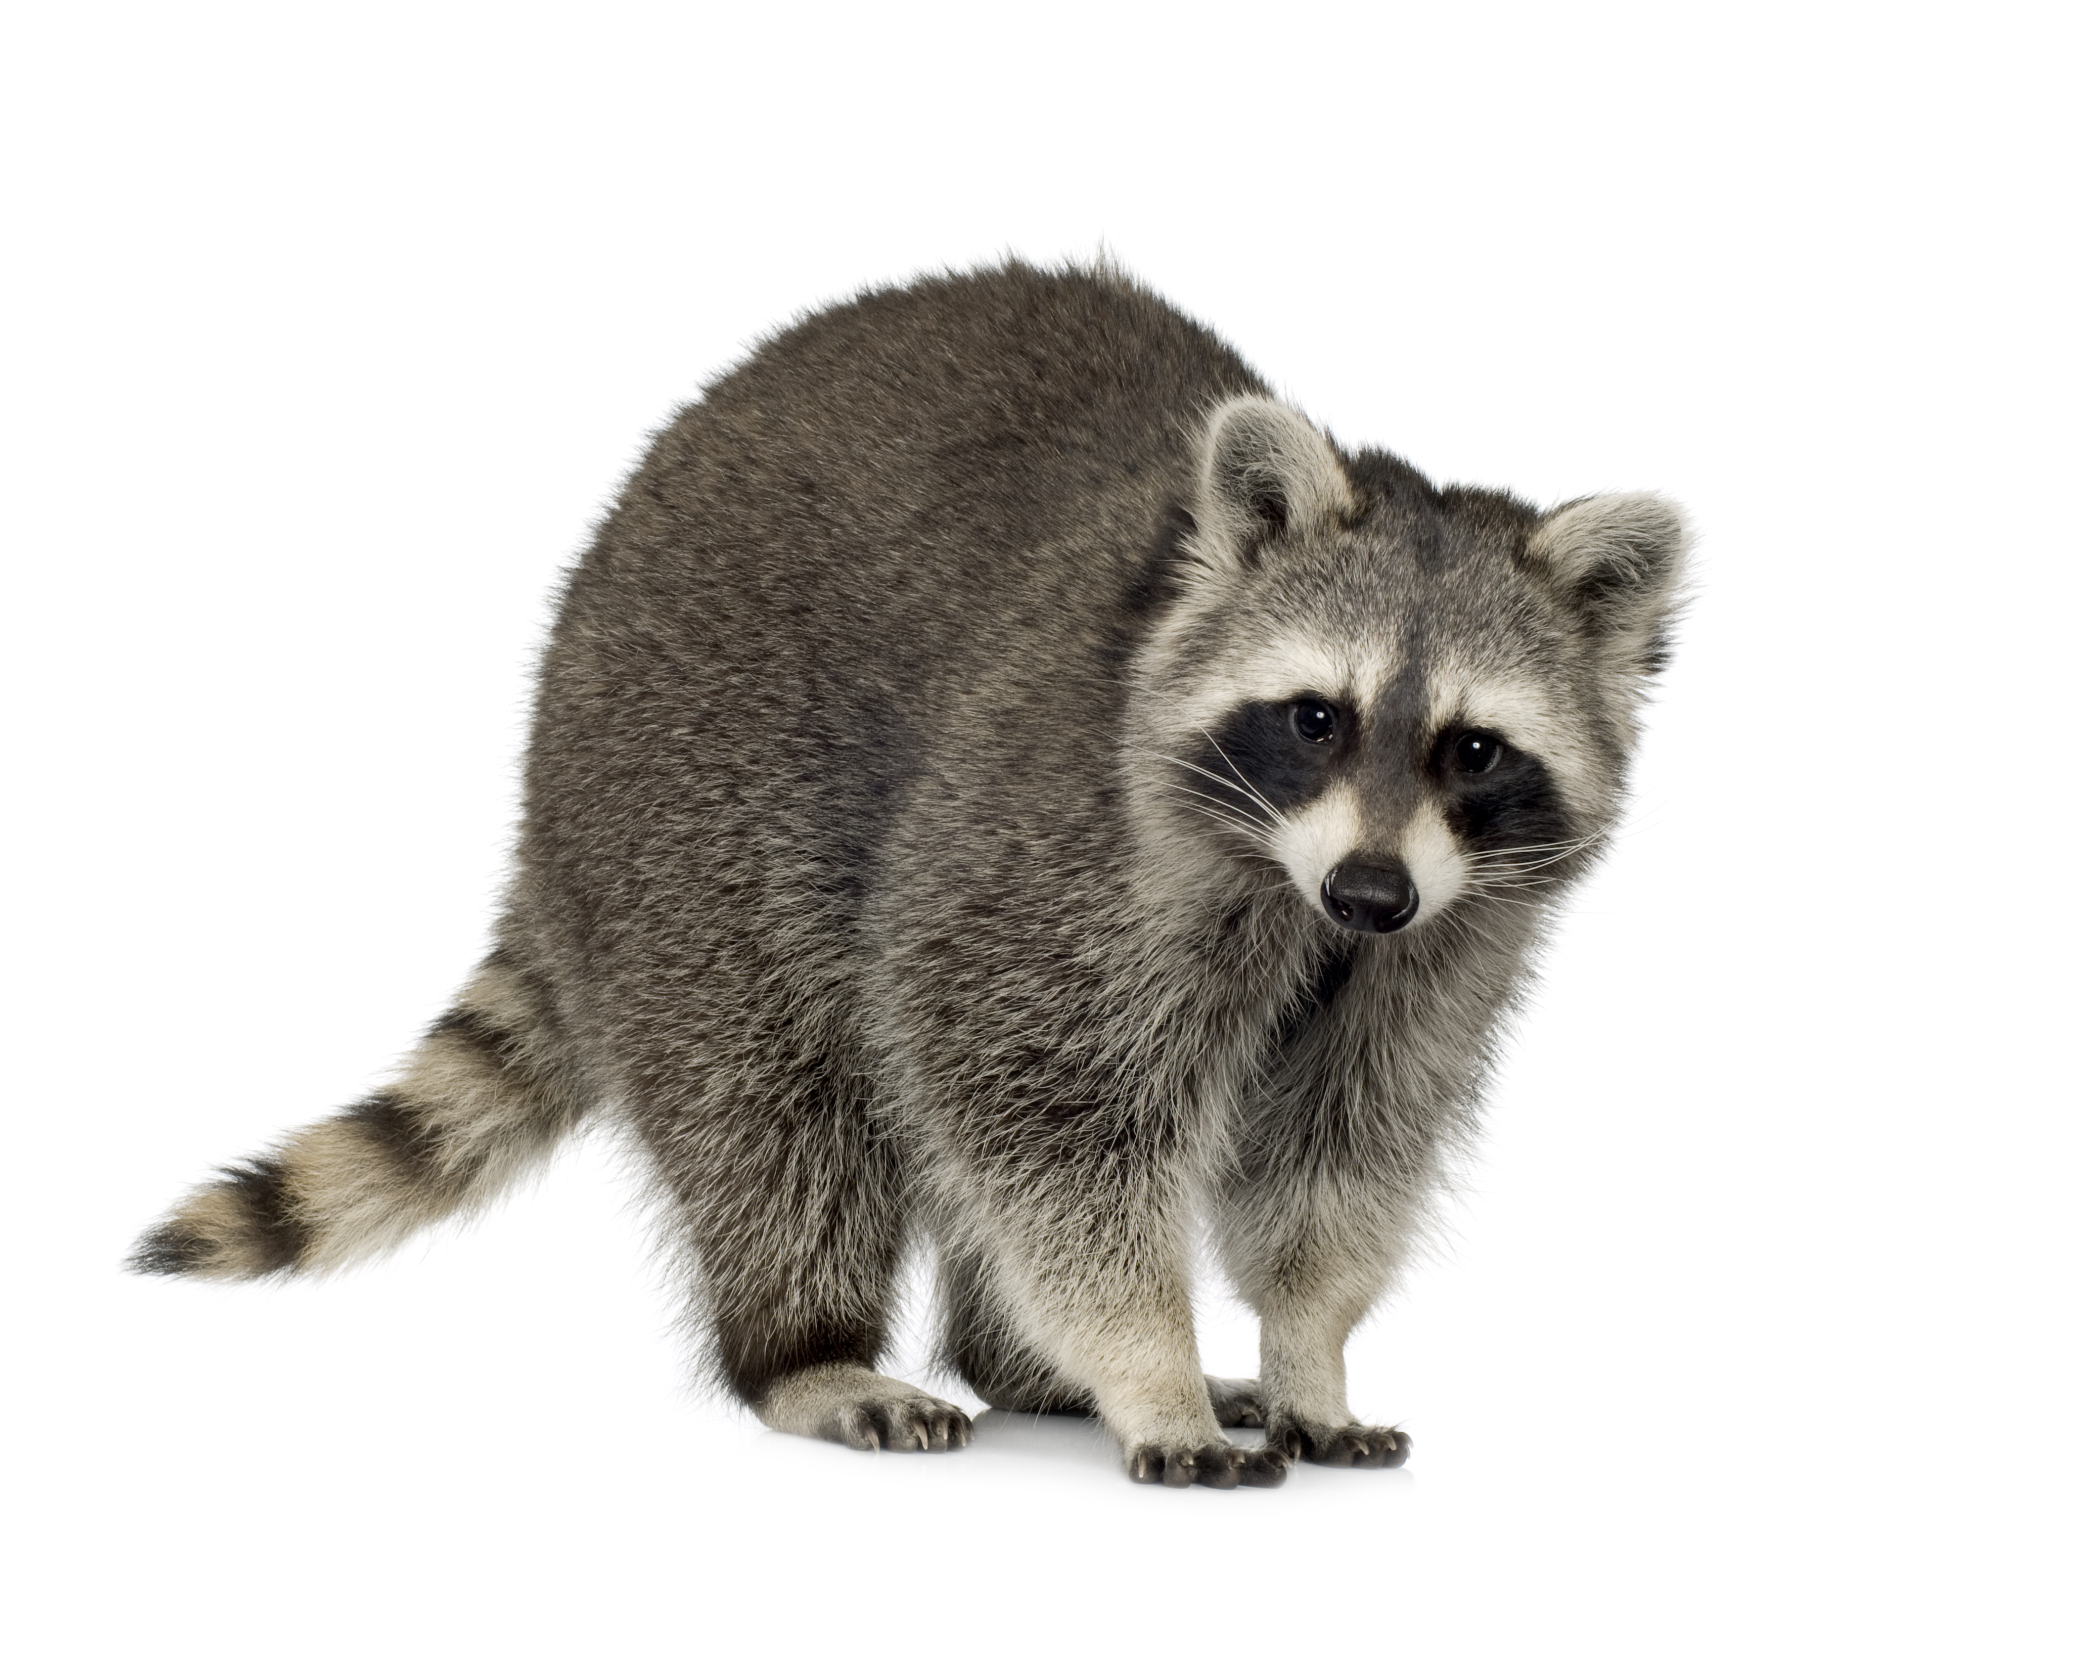 A Raccoon - Raccoon PNG